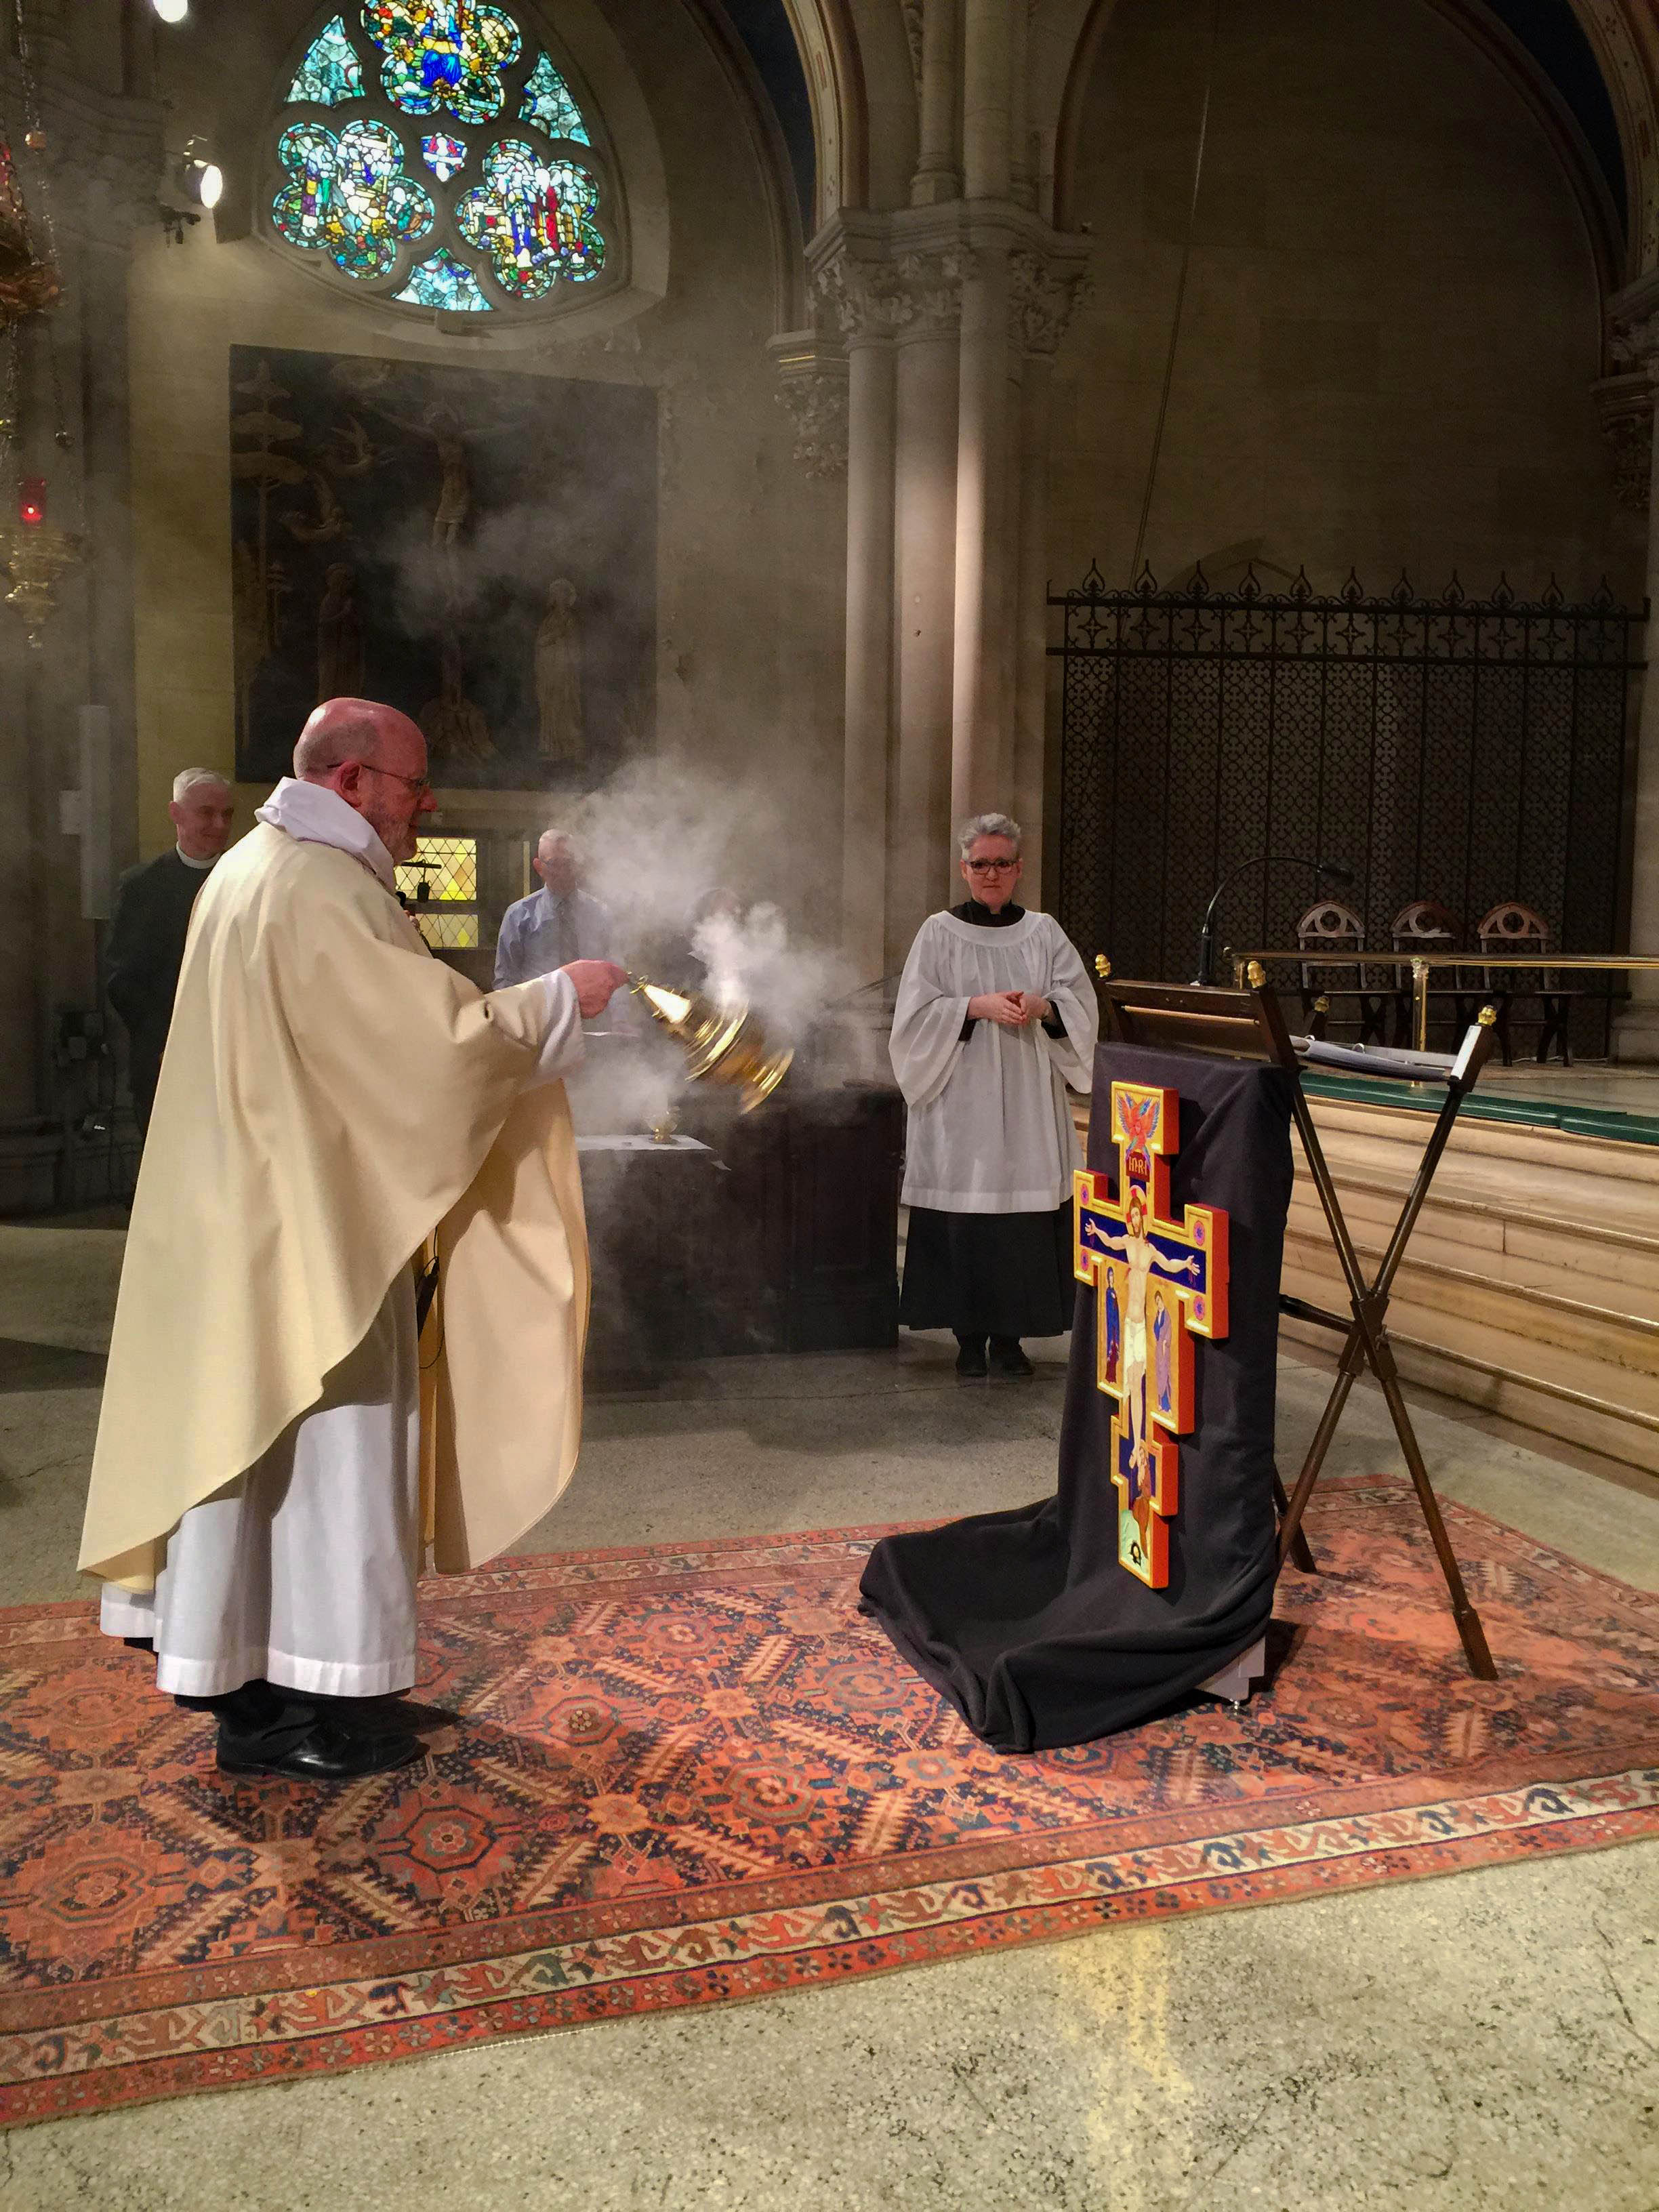 Incense is offered during the blessing of the icon commissioned for All Souls Church, Washington, D.C.